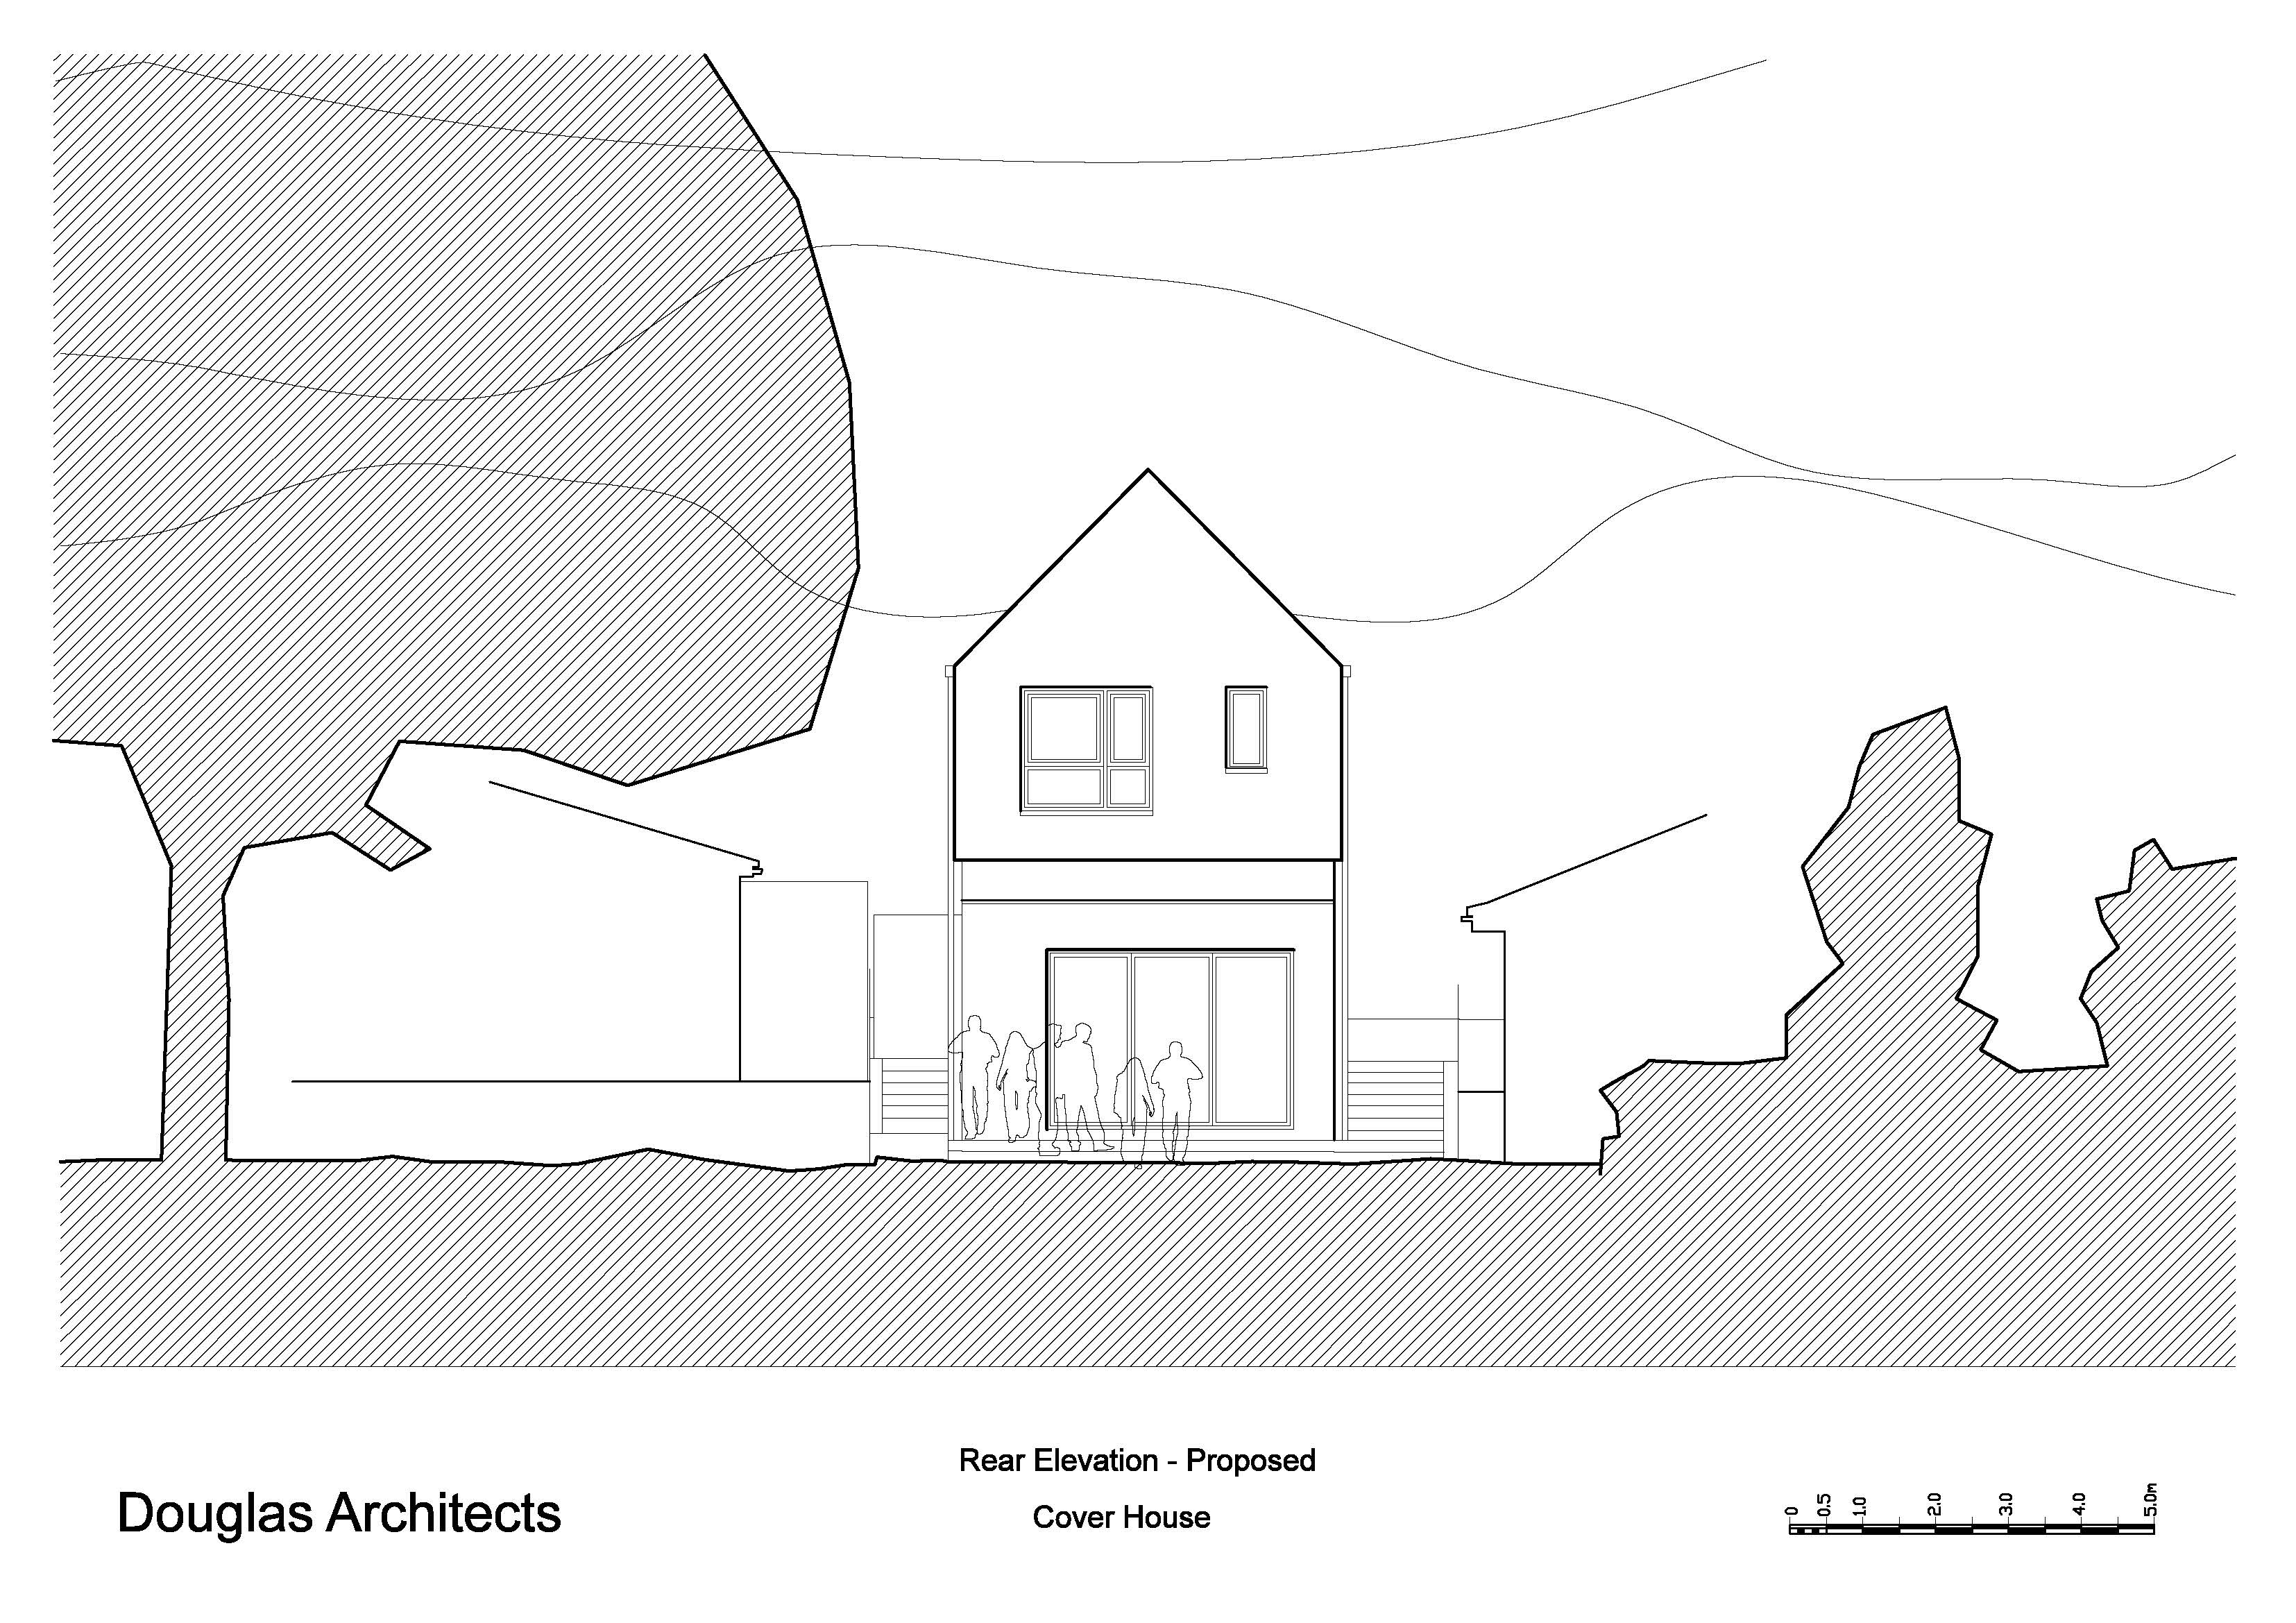 New house in Bury St Edmunds by Douglas Architects